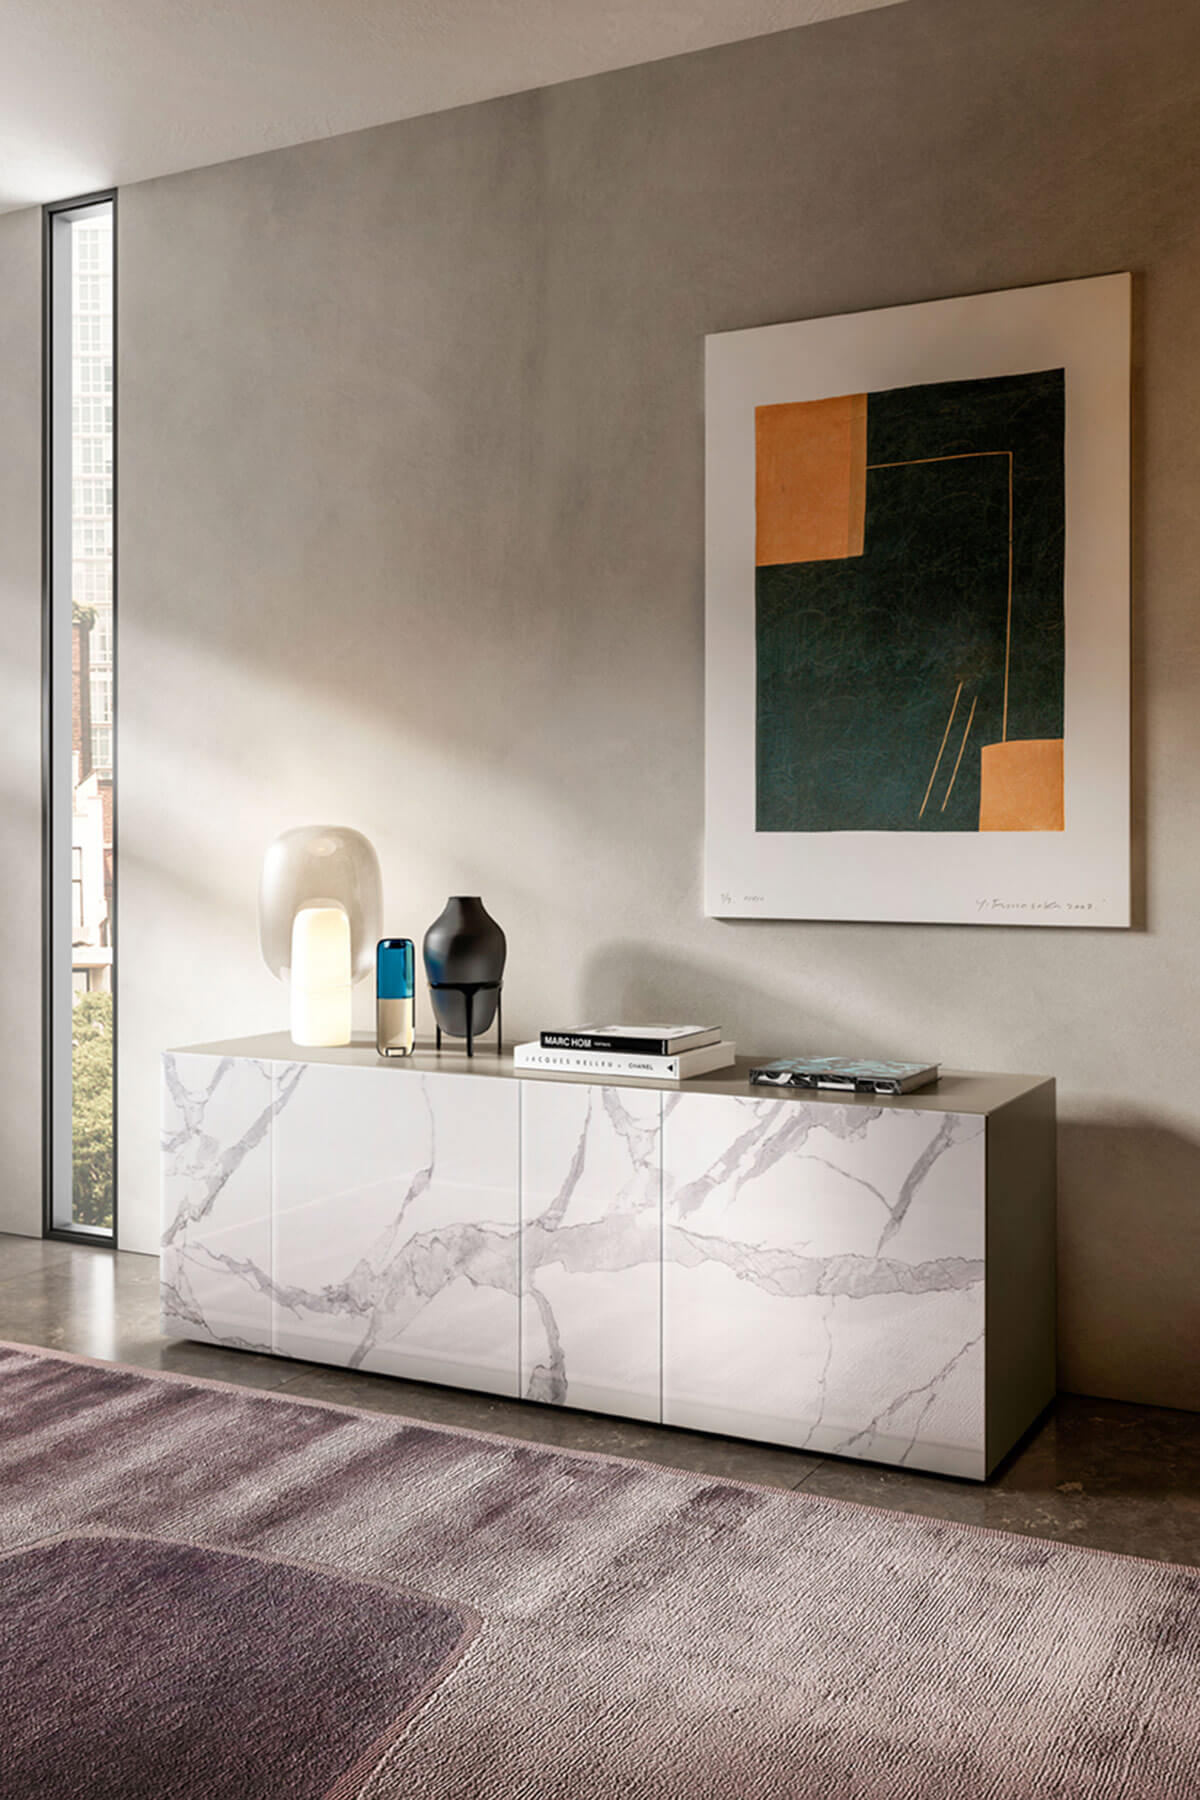 Designer Sideboards 36e8 Sideboard The Combinations Of The 36e8 System Lago Design